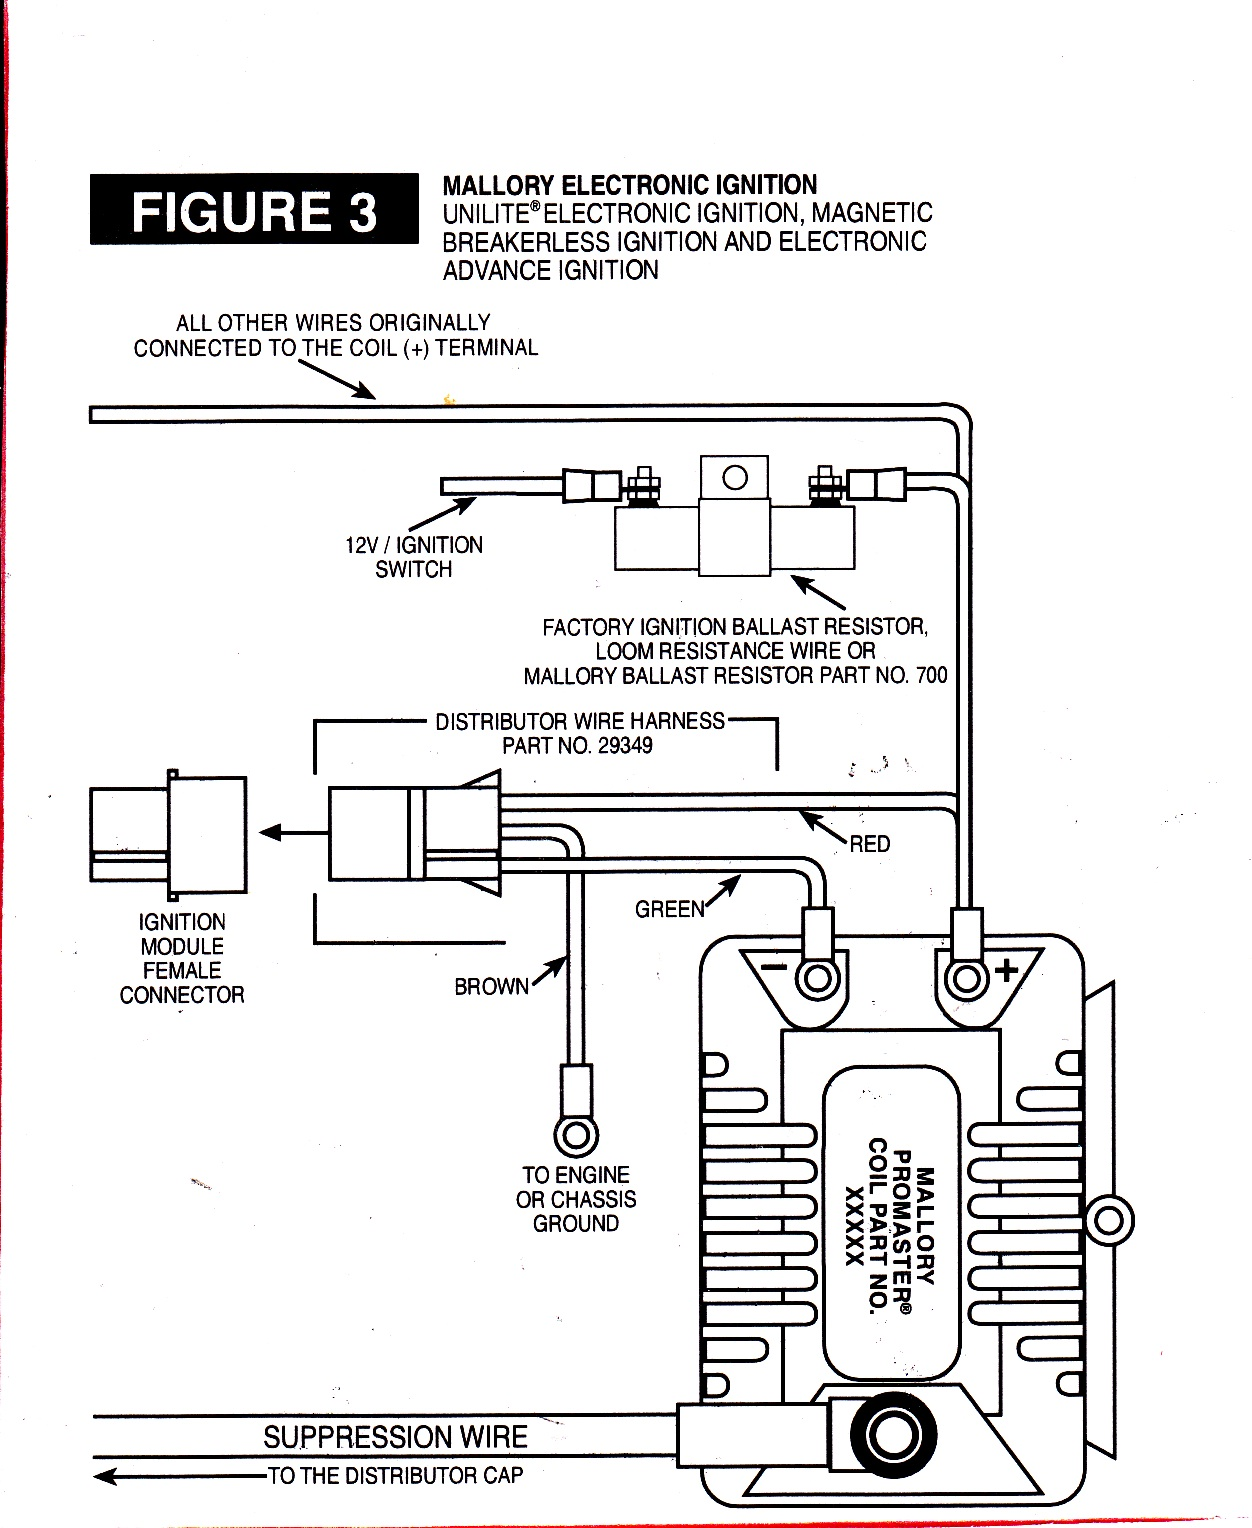 blowing ign acc 20 amp fuses at box the h a m b mallory distributor wiring diagram at gsmx.co